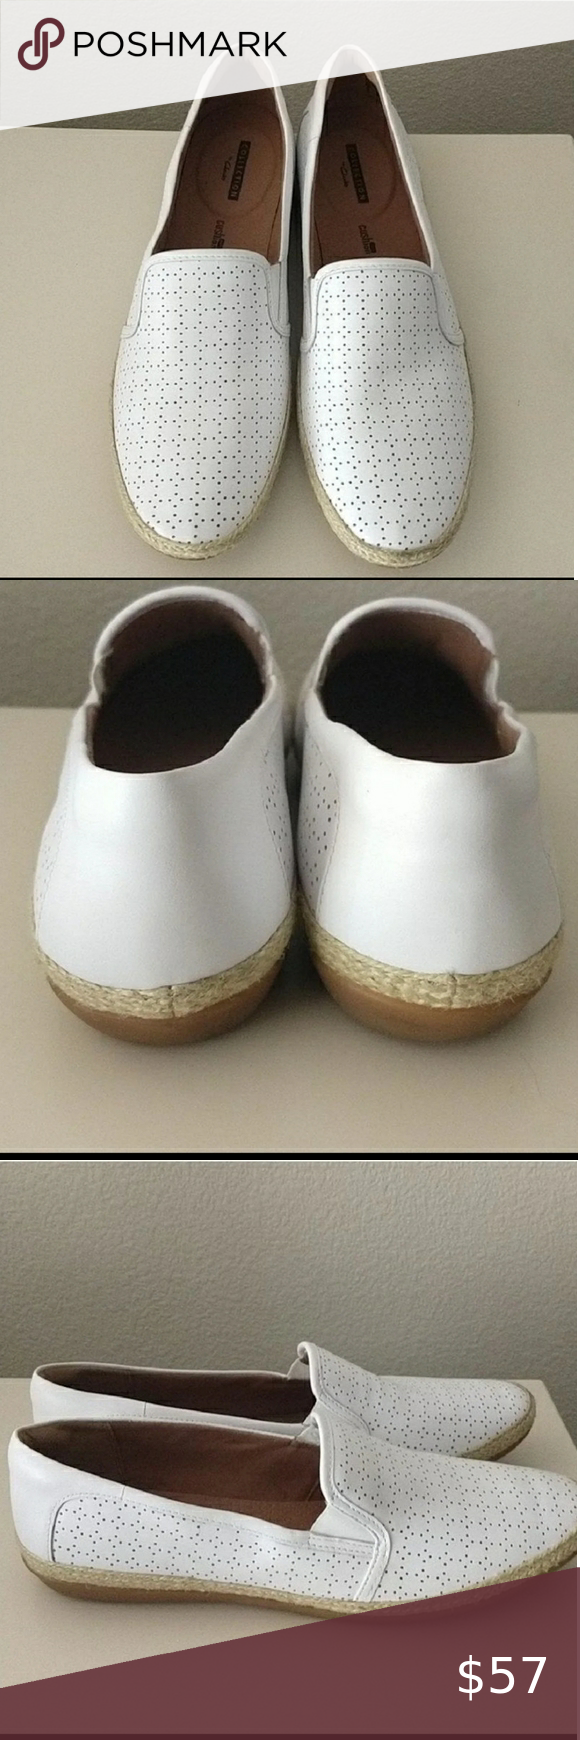 Clarks White Slip on Shoes in 2020